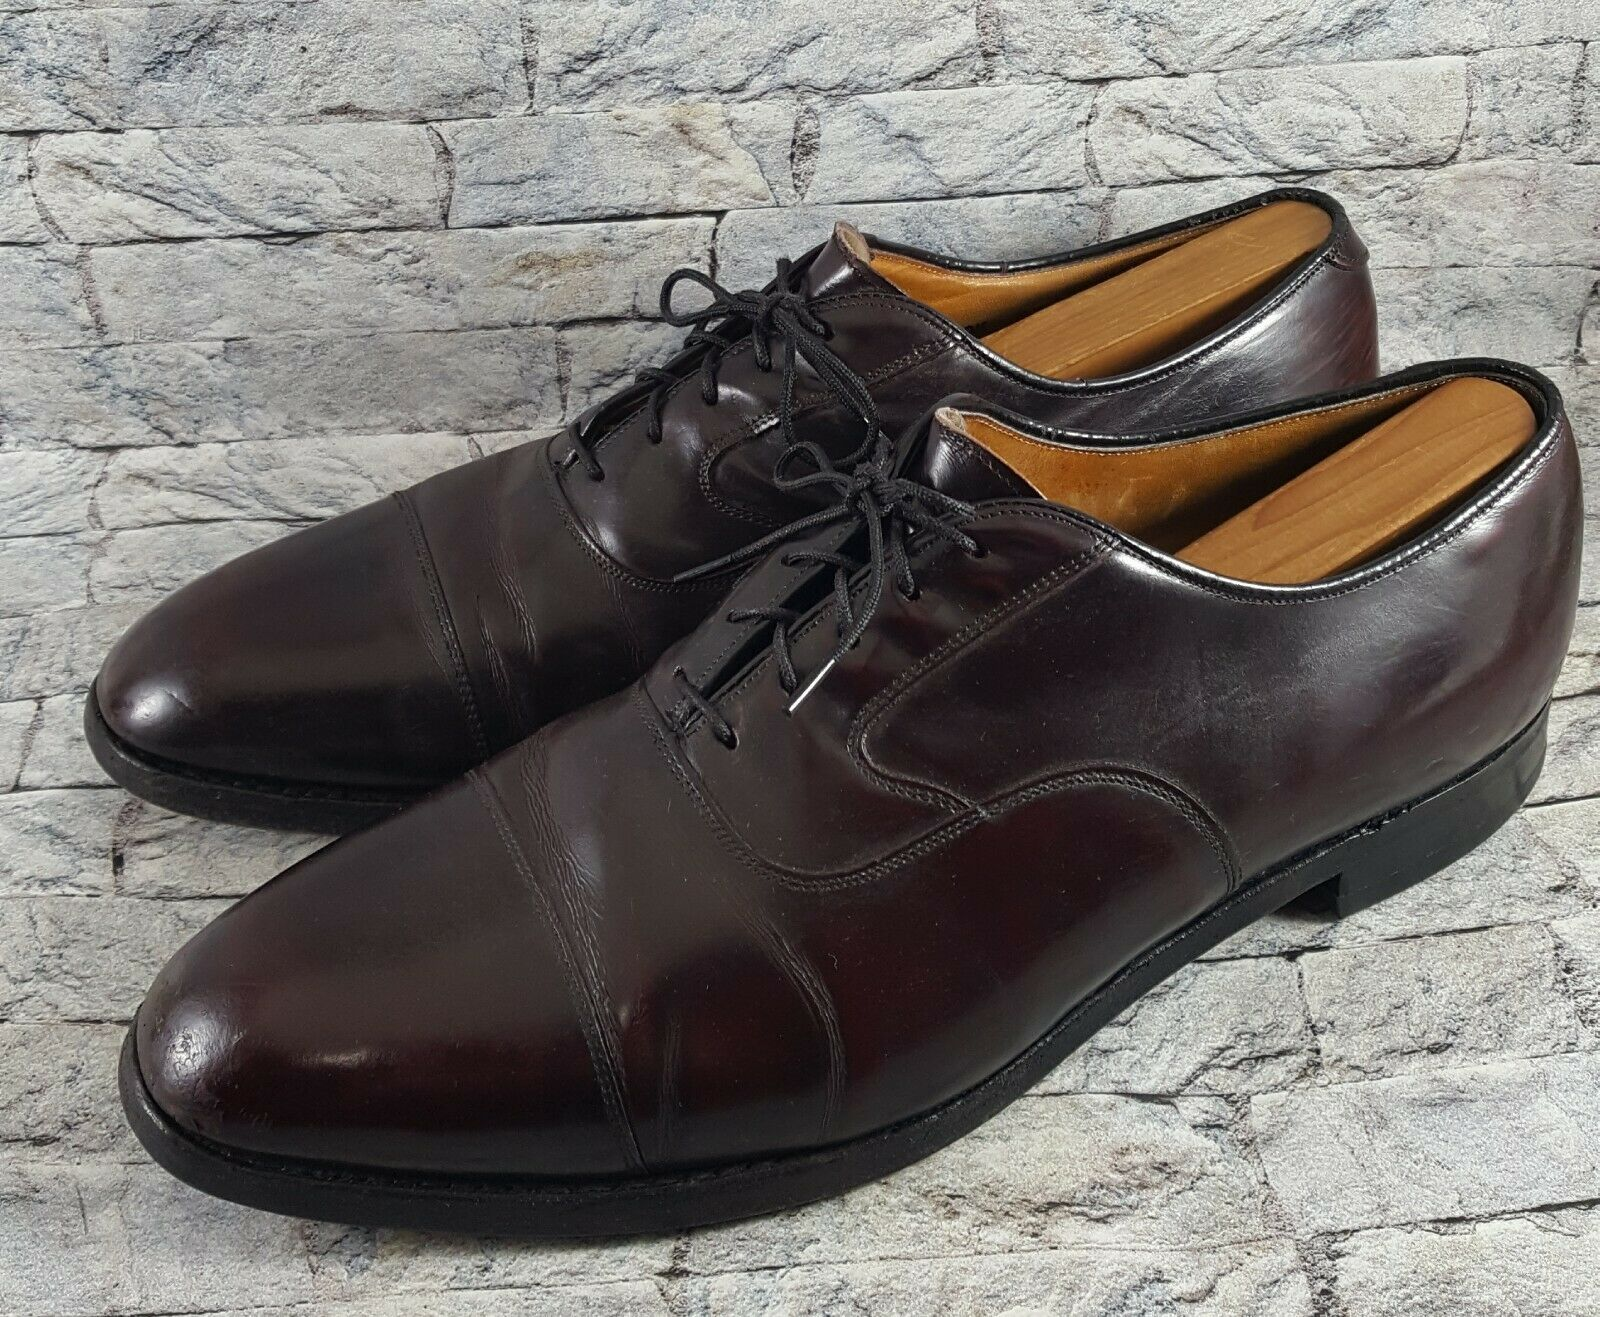 Johnston & Murphy Limited Collection Men Burgundy Leather Cap Toe Oxfords 10.5 C